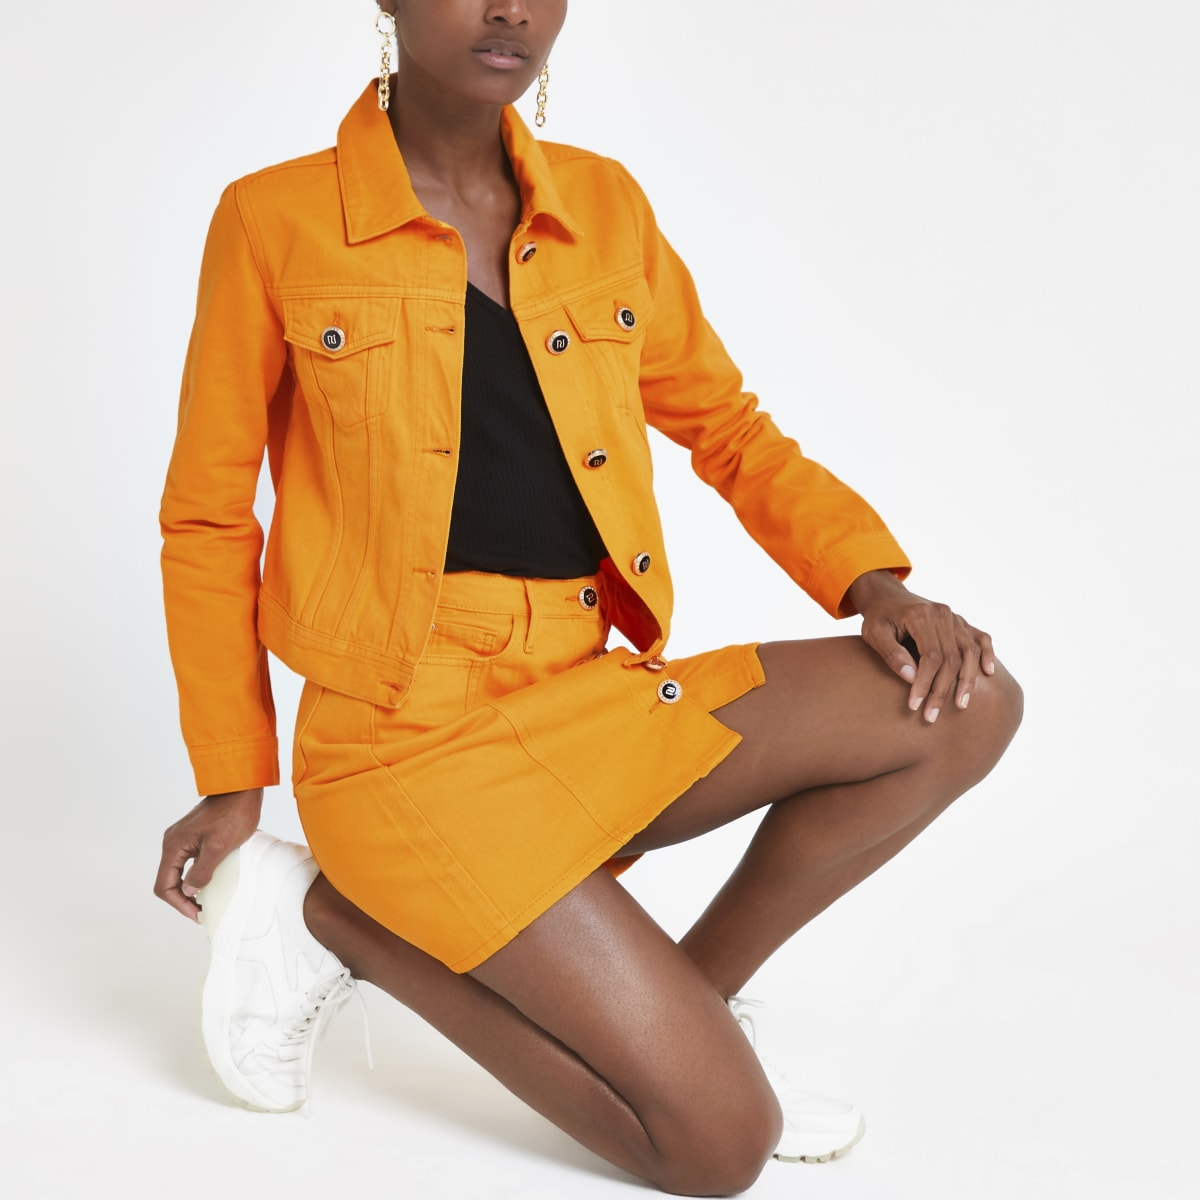 Veste en denim ajustée orange vif